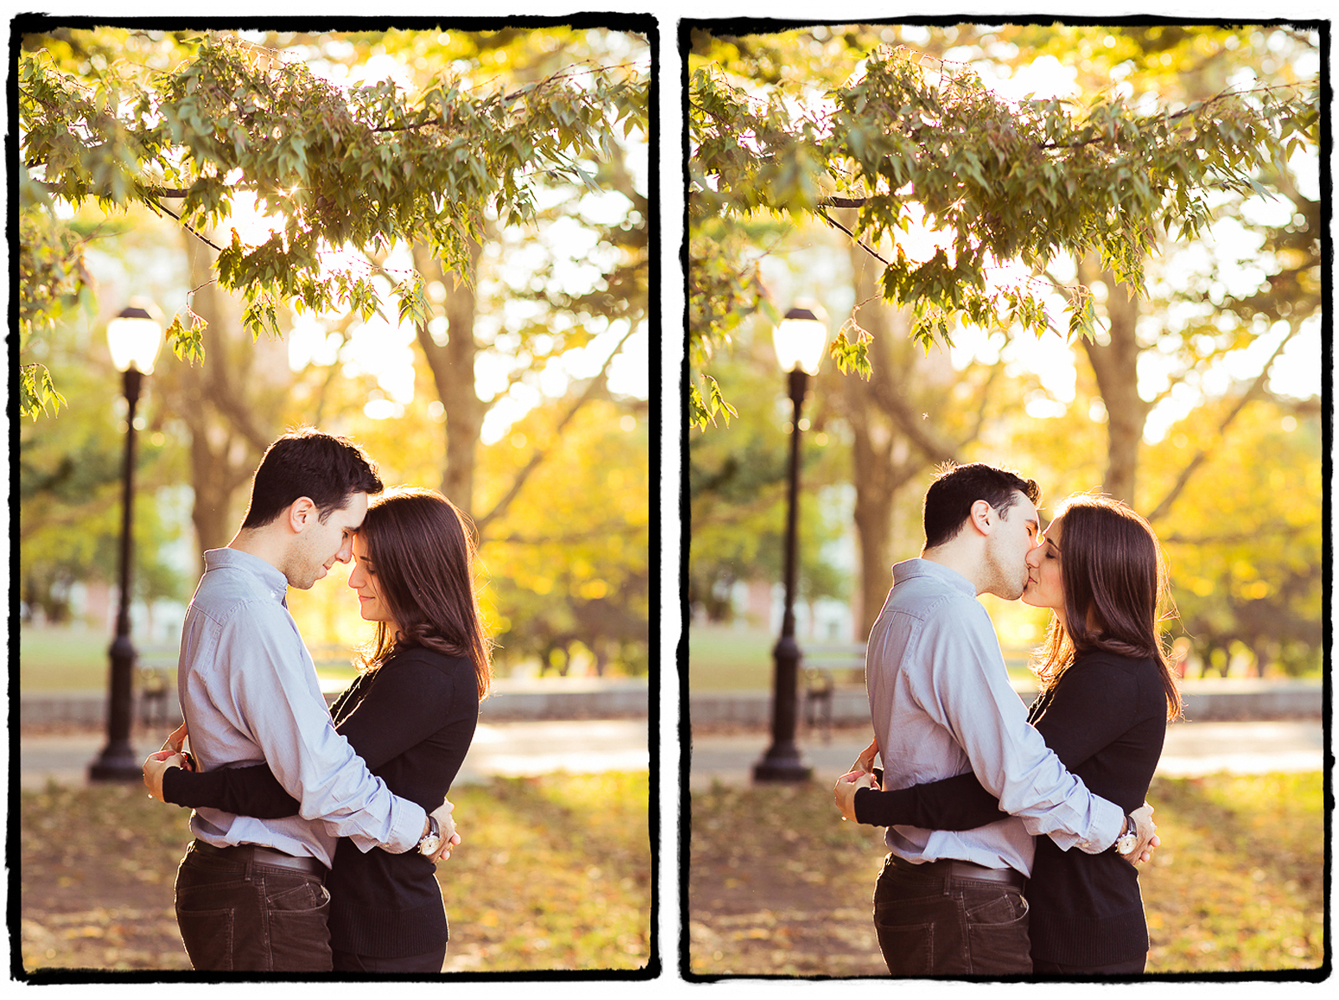 Engagement Portraits: Emily & Adam in Fort Greene park.